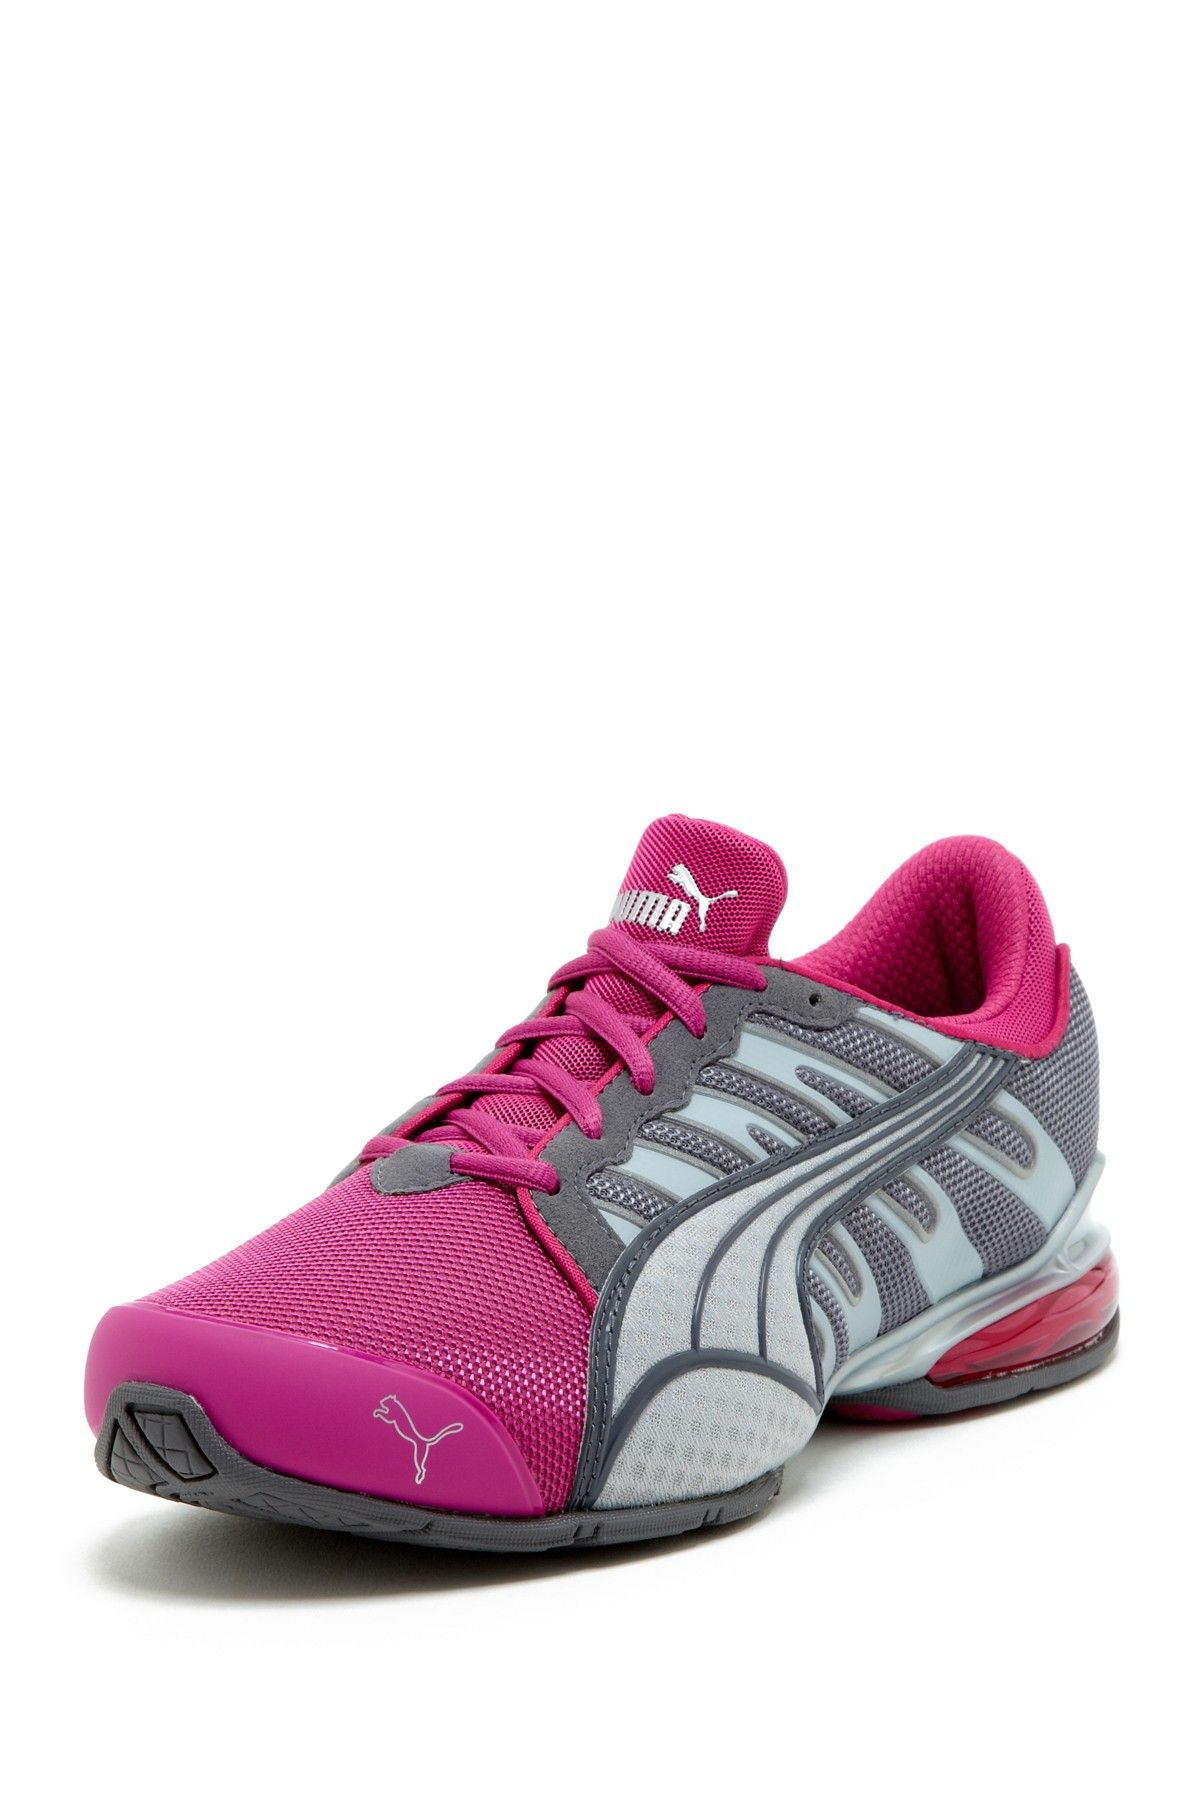 Voltaic sneaker gym shoes best sneakers shoes